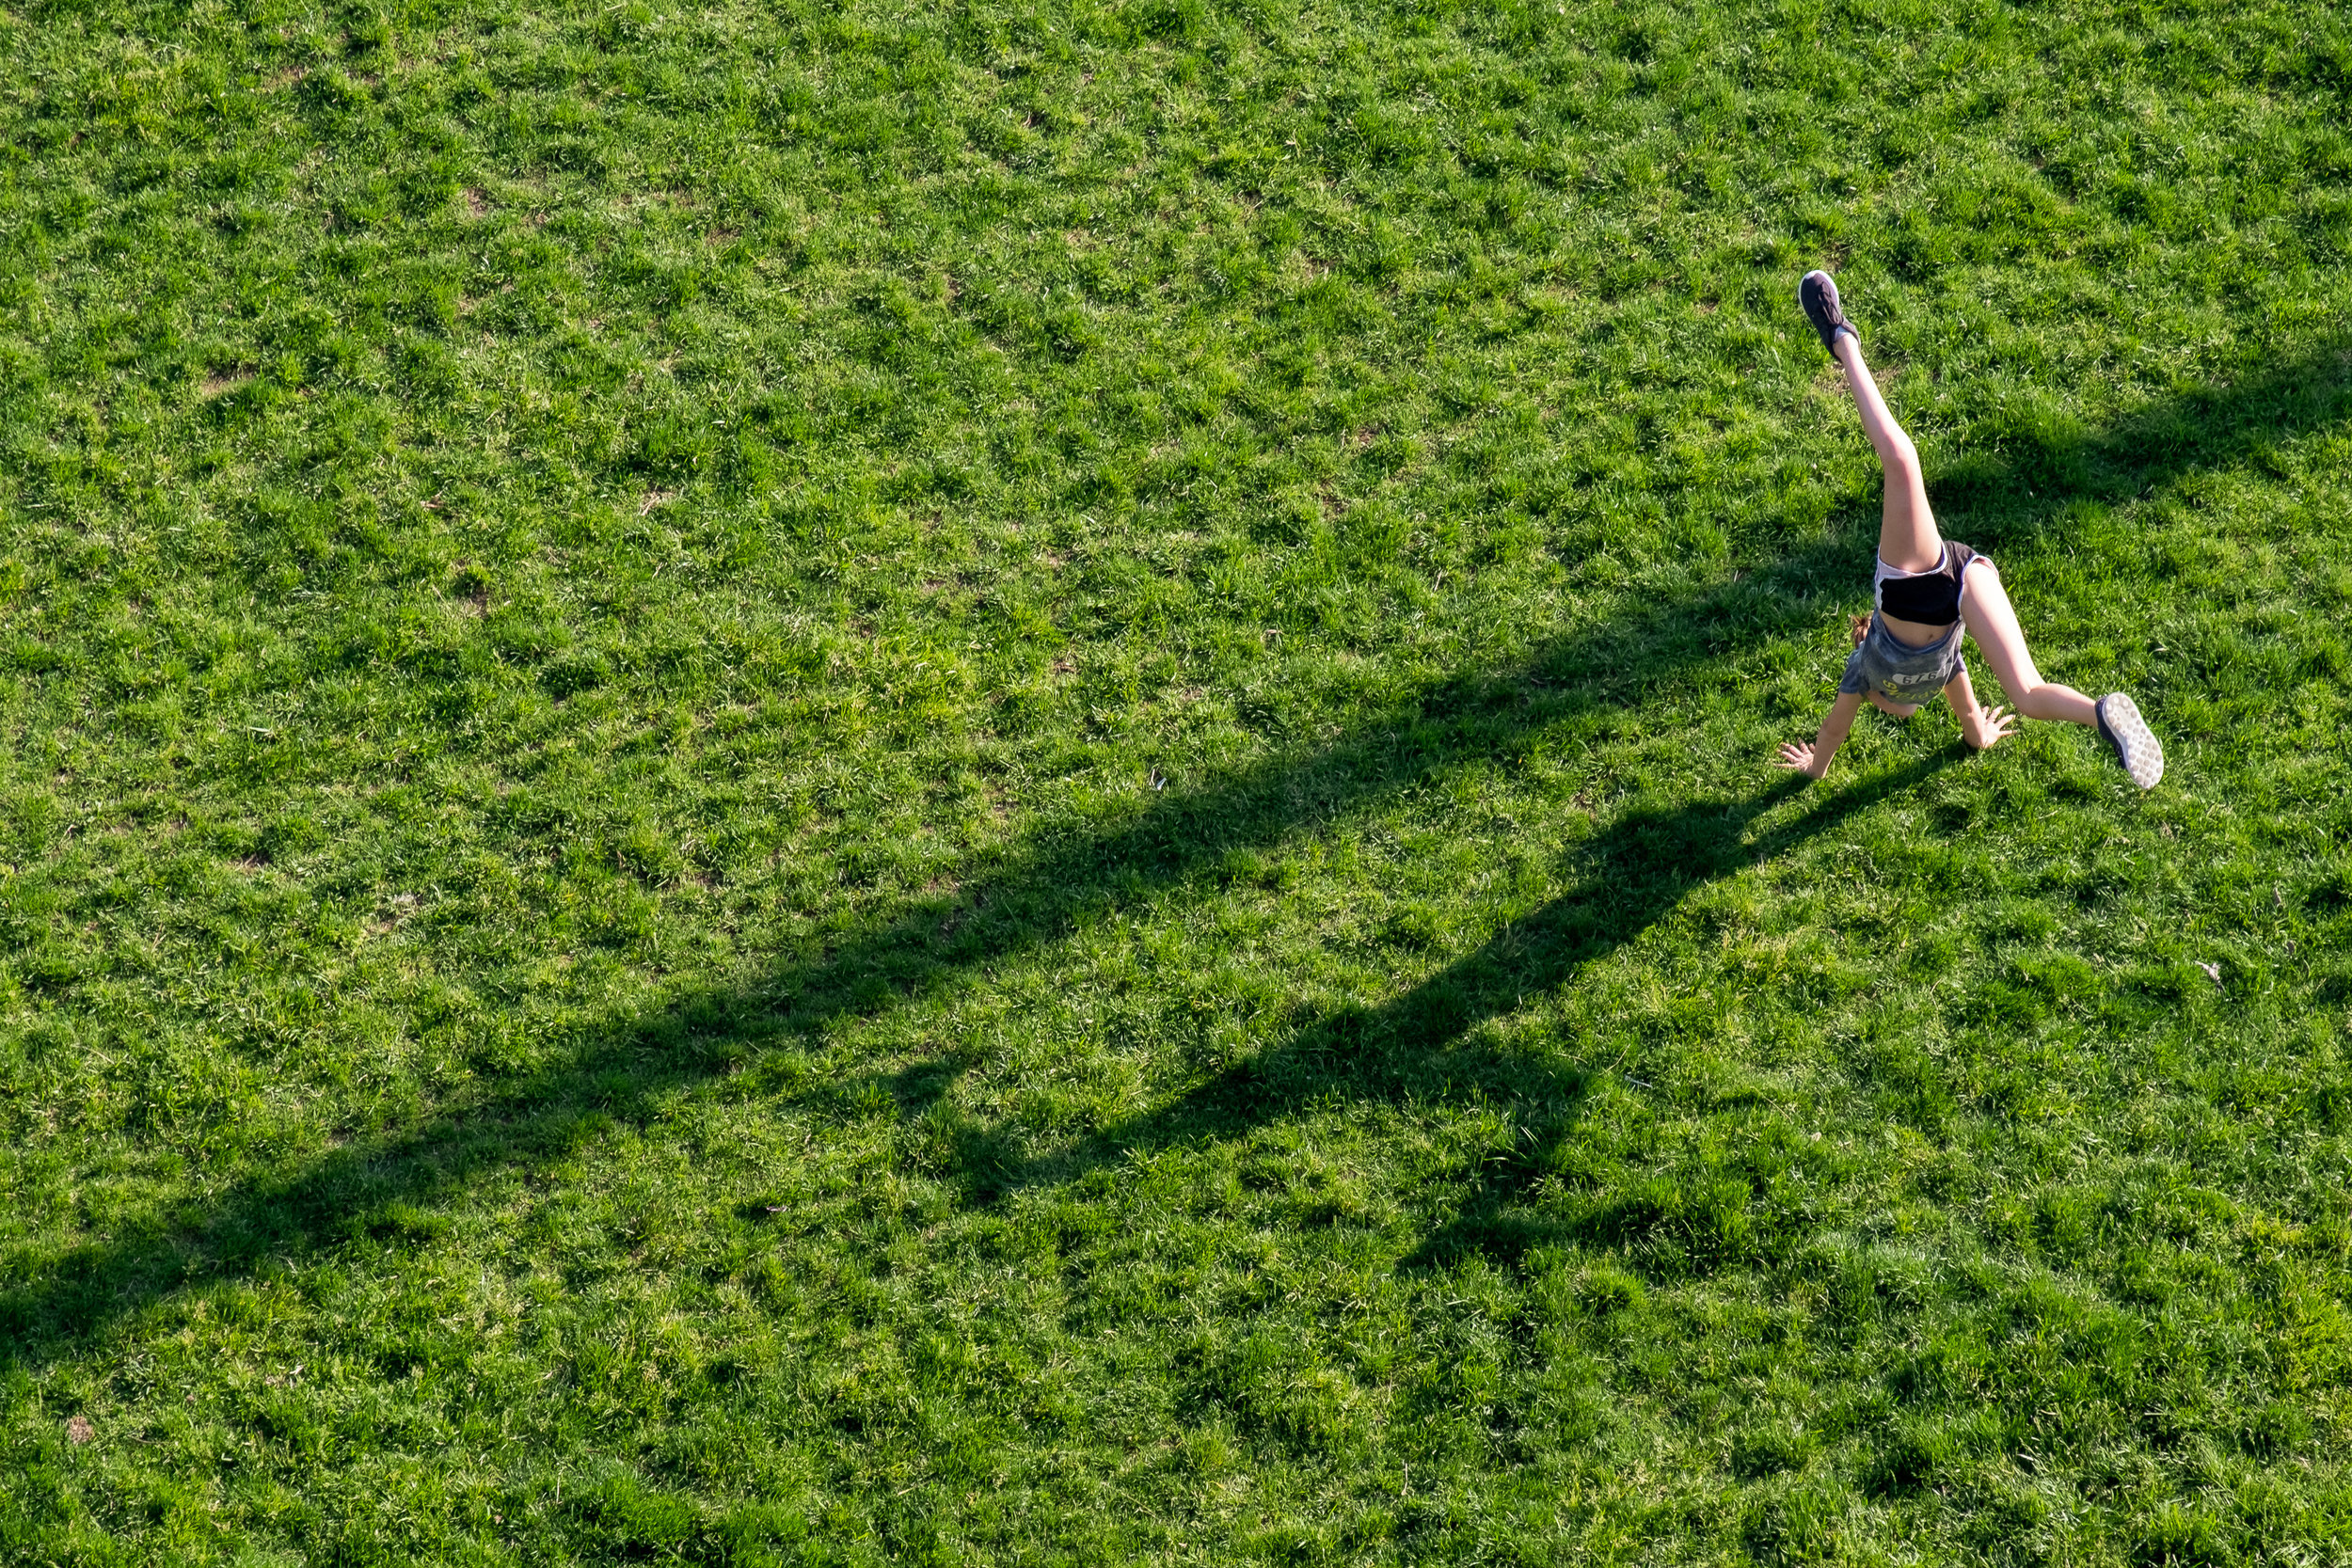 """Cartwheels and shadows"" May 25, 2018. DUMBO, Brooklyn Fujifilm XPro2, 55-200mm, f/8, 1/250 sec, ISO 320   Another shot from the Manhattan Bridge pedestrian walkway. This was looking down over Brooklyn Bridge Park in DUMBO."